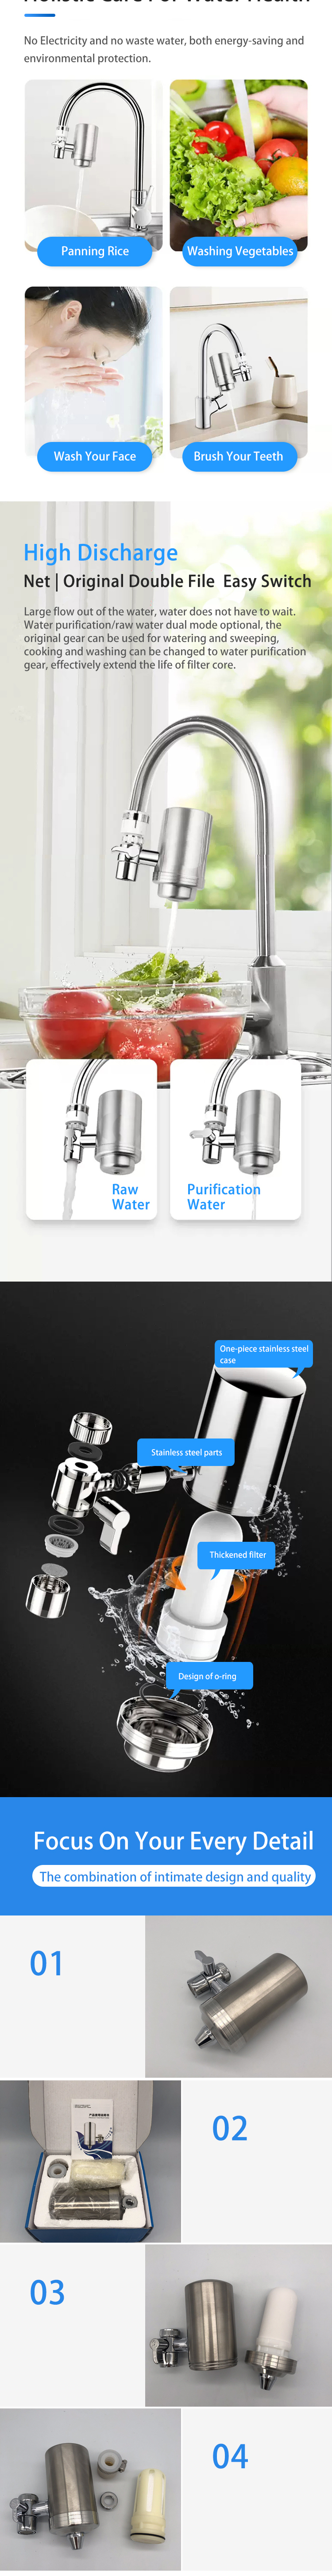 Filter Water Tap With Ceramic Filter Cartridge, Faucet Water Filter For Household Kitchen Faucet Water Purifier